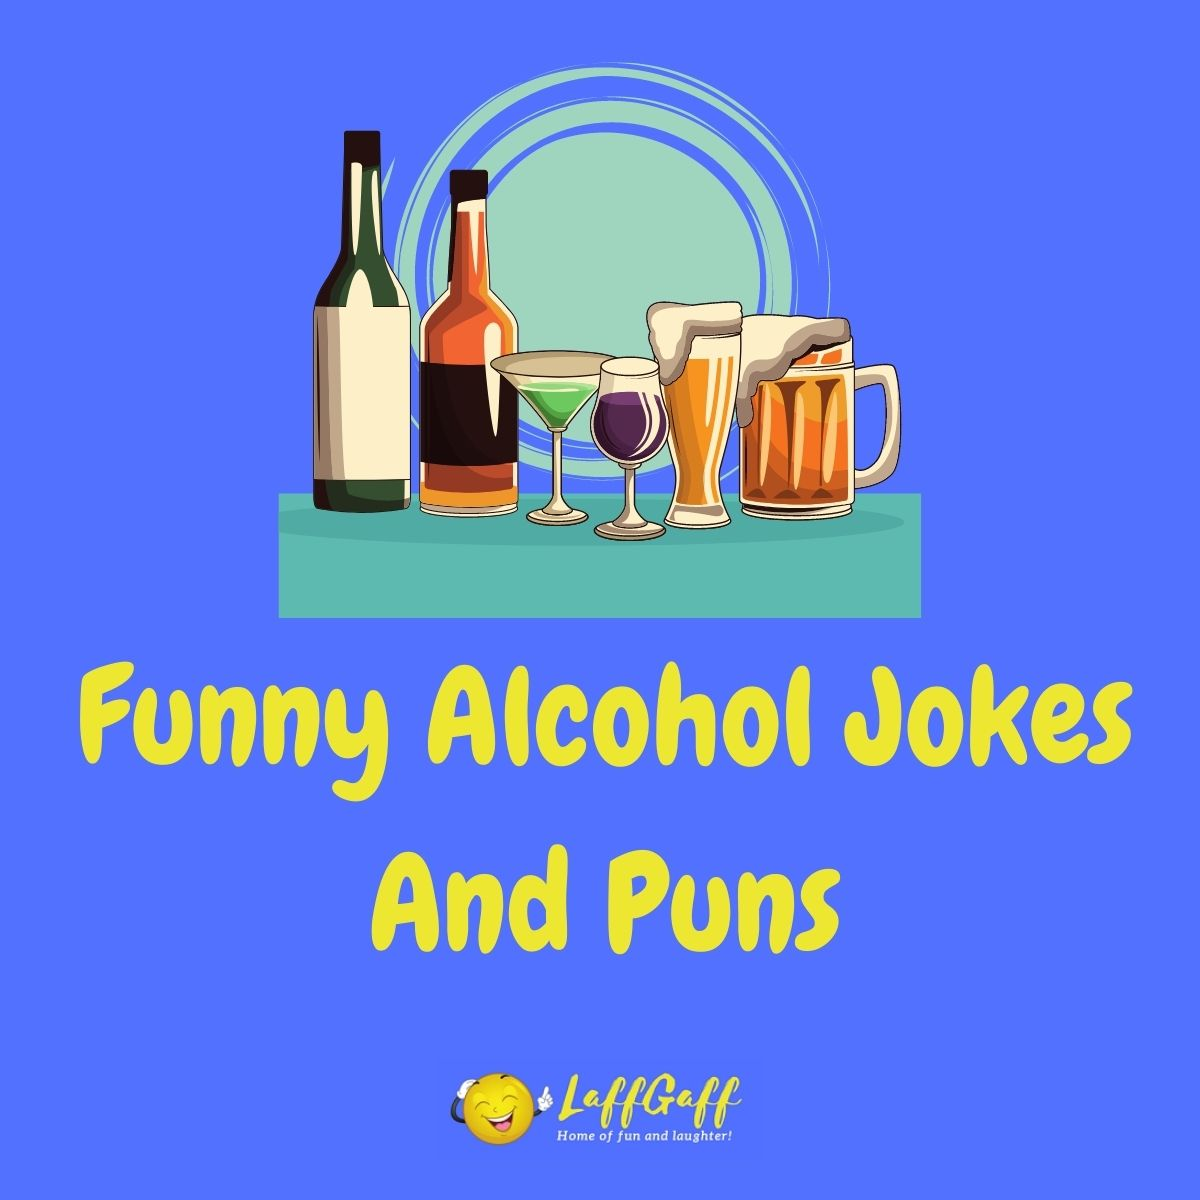 Featured image for a page of funny alcohol jokes and puns.